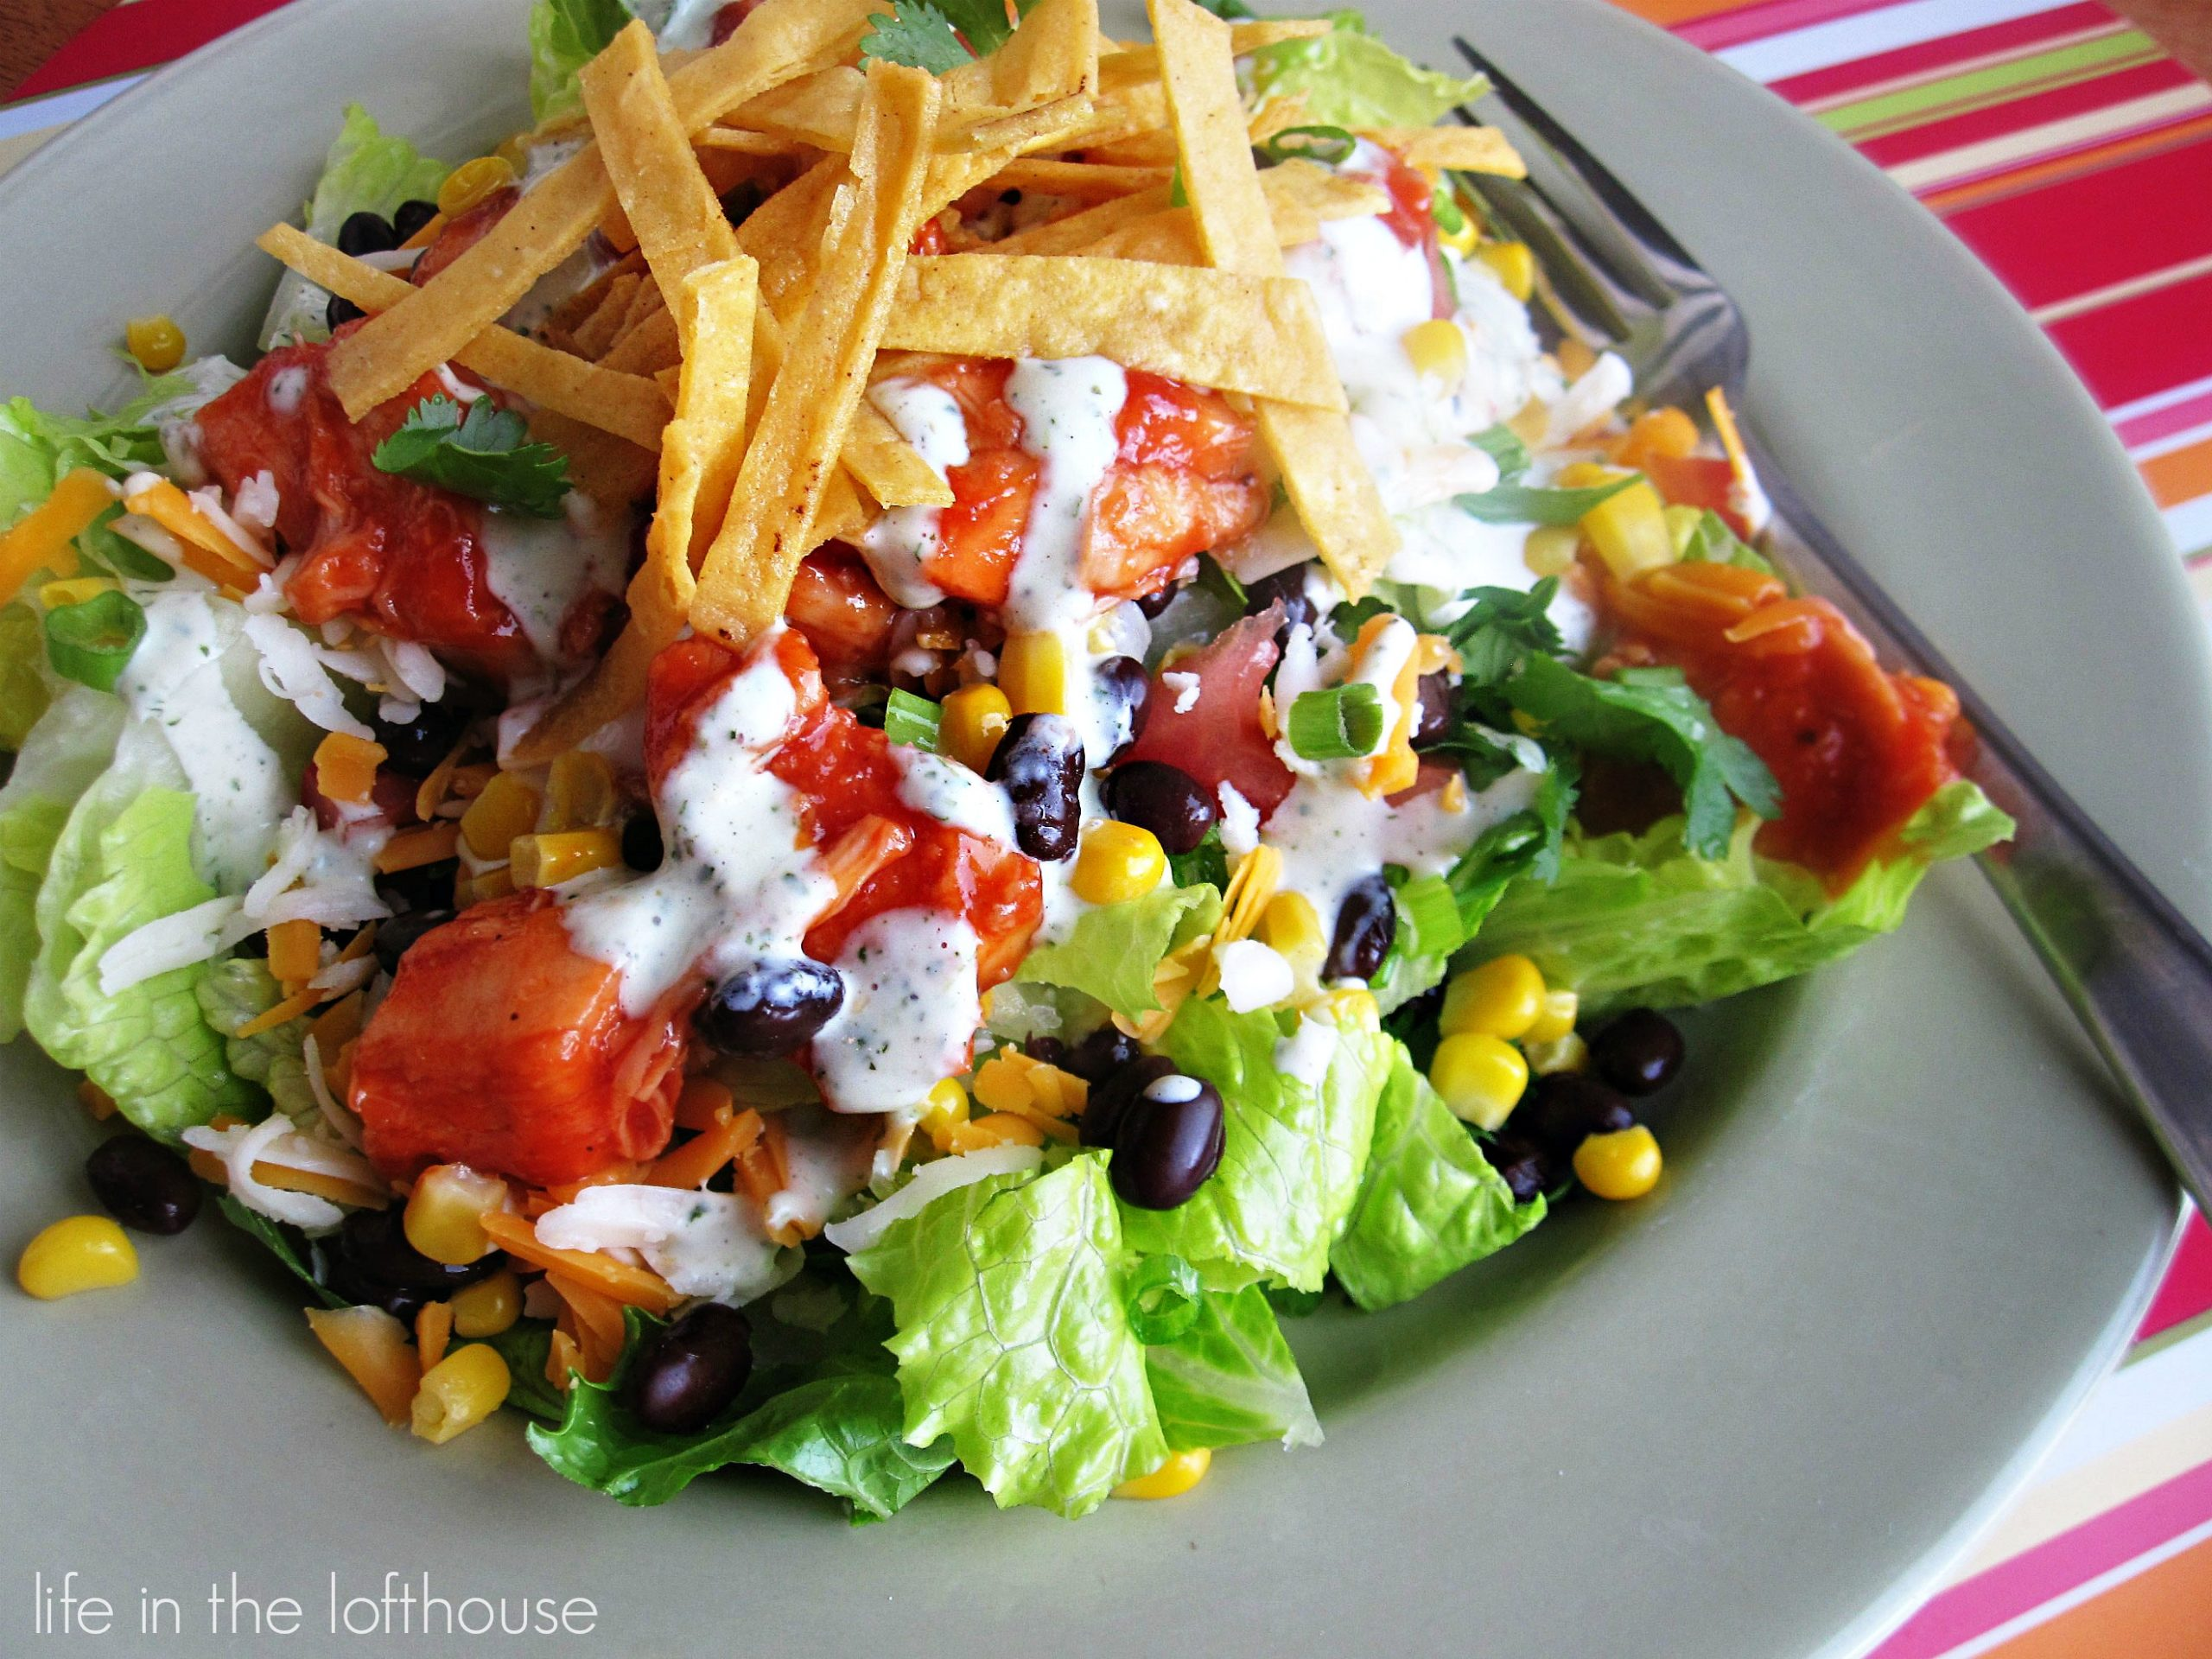 http://life-in-the-lofthouse.com/wp-content/uploads/2014/06/BBQ-Chicken-Salad.jpg